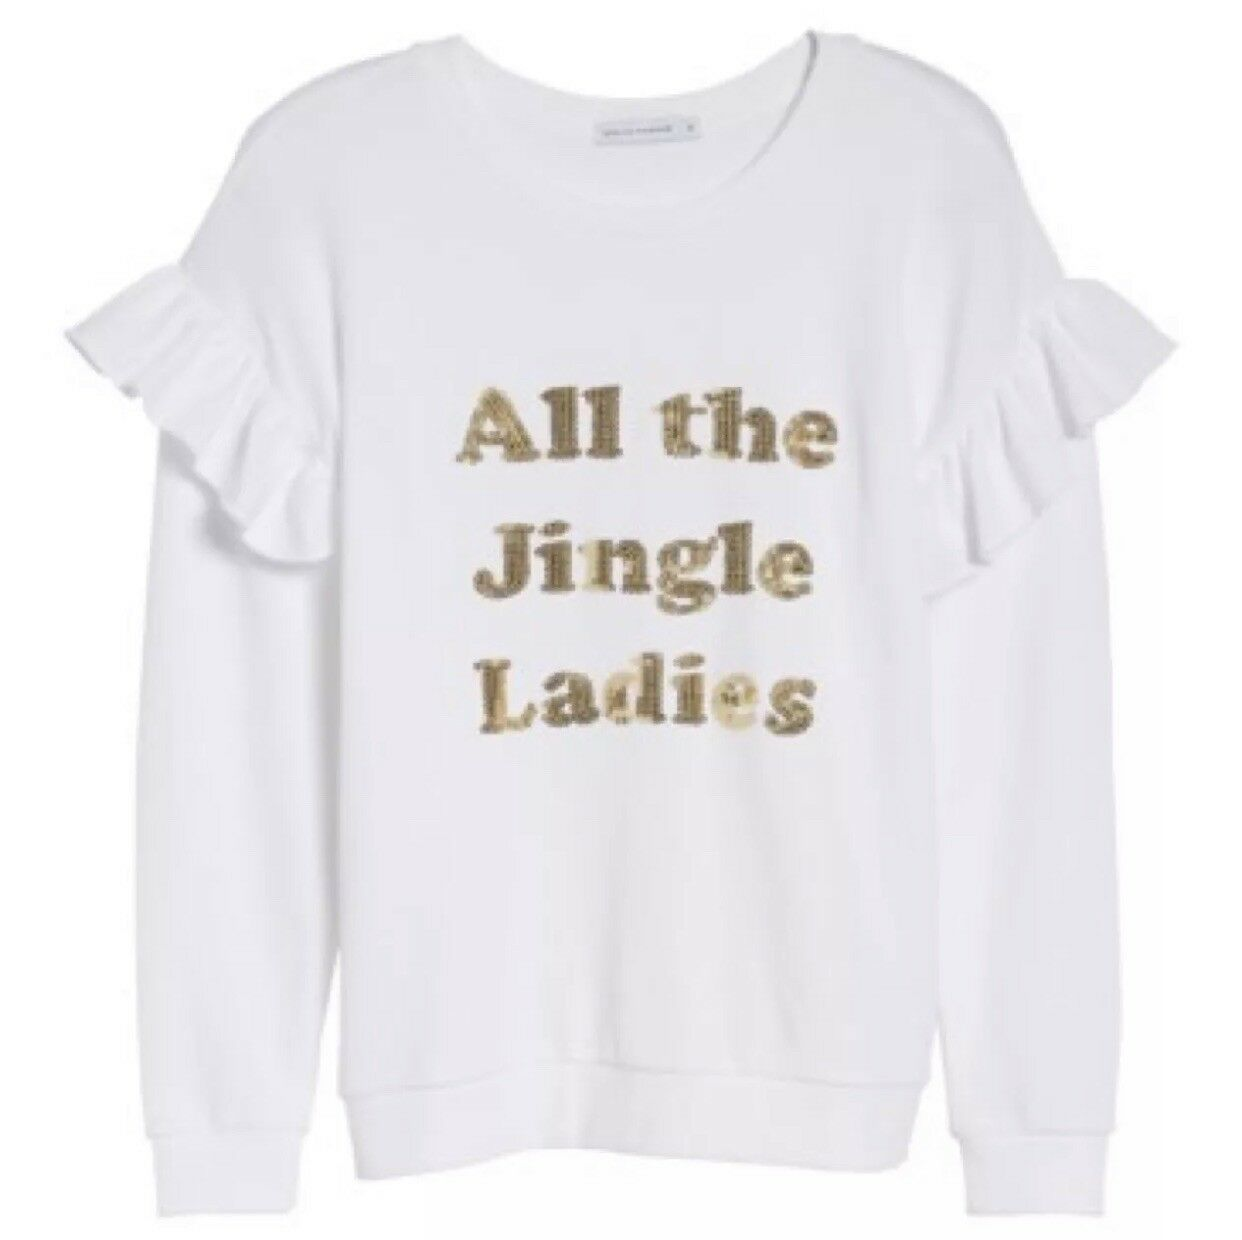 NWT South Parade All the Jingle Ladies Sweatshirt Size Small